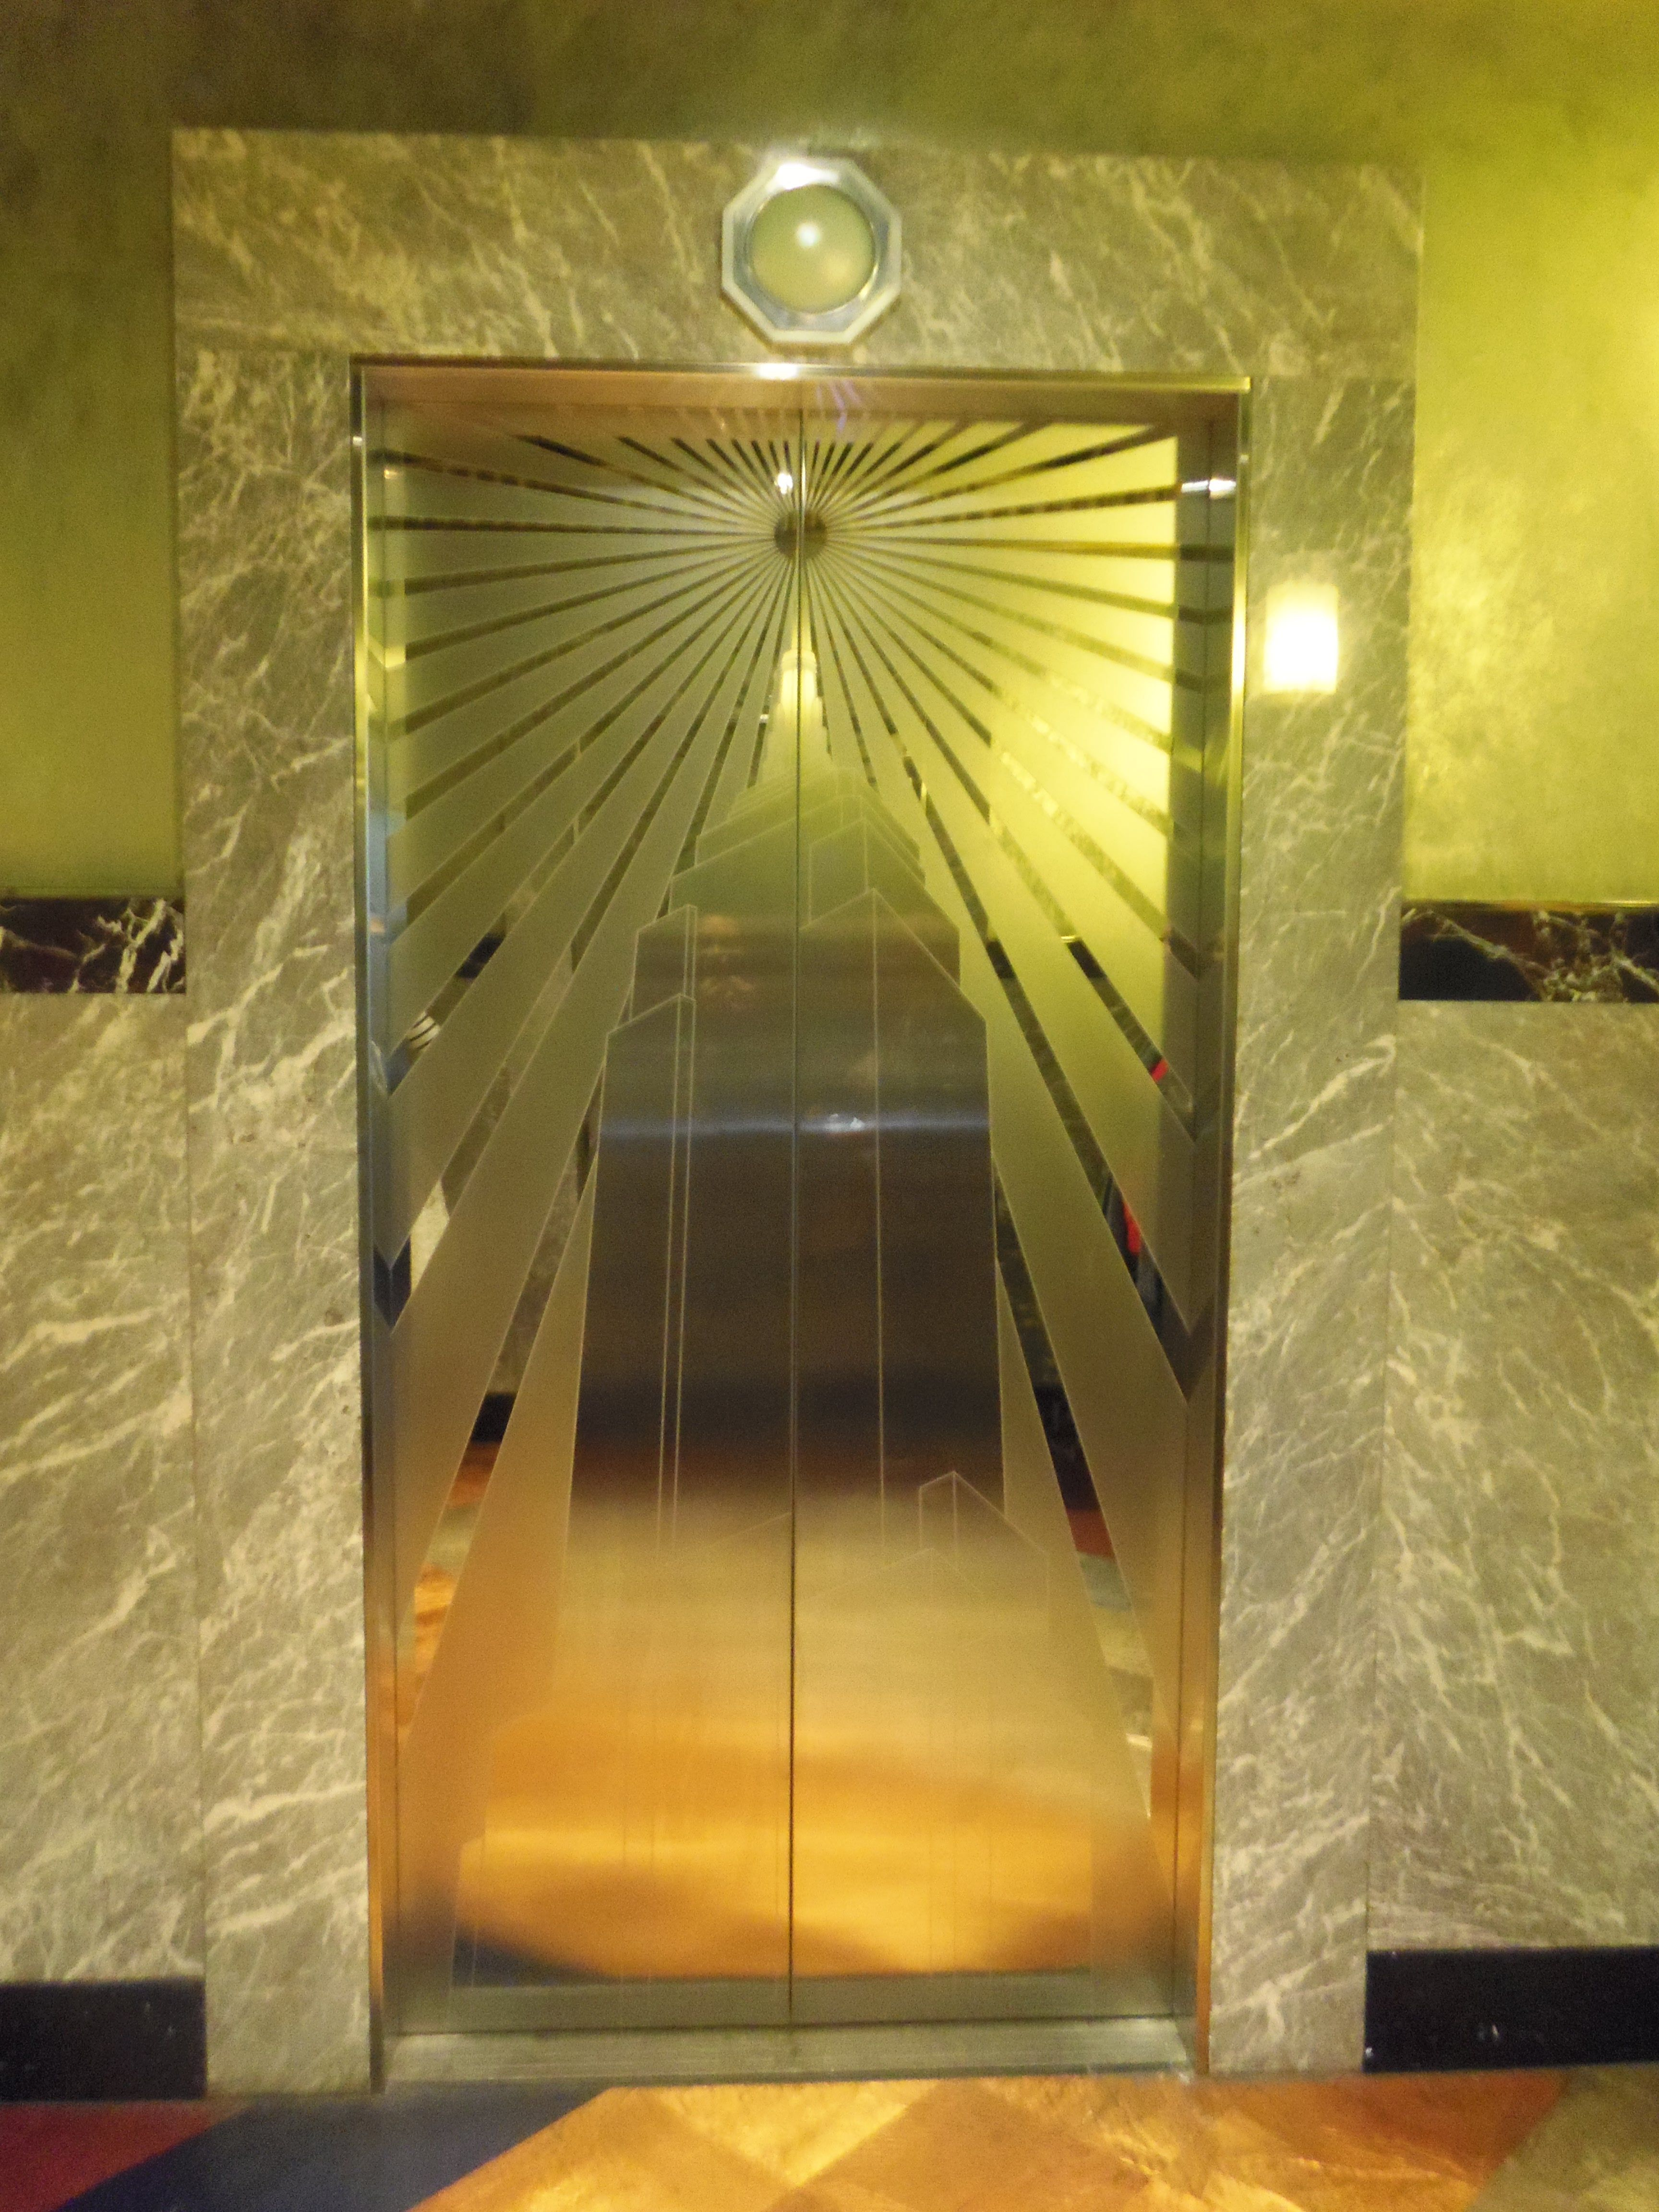 Original Art Deco Empire State Building Interior The